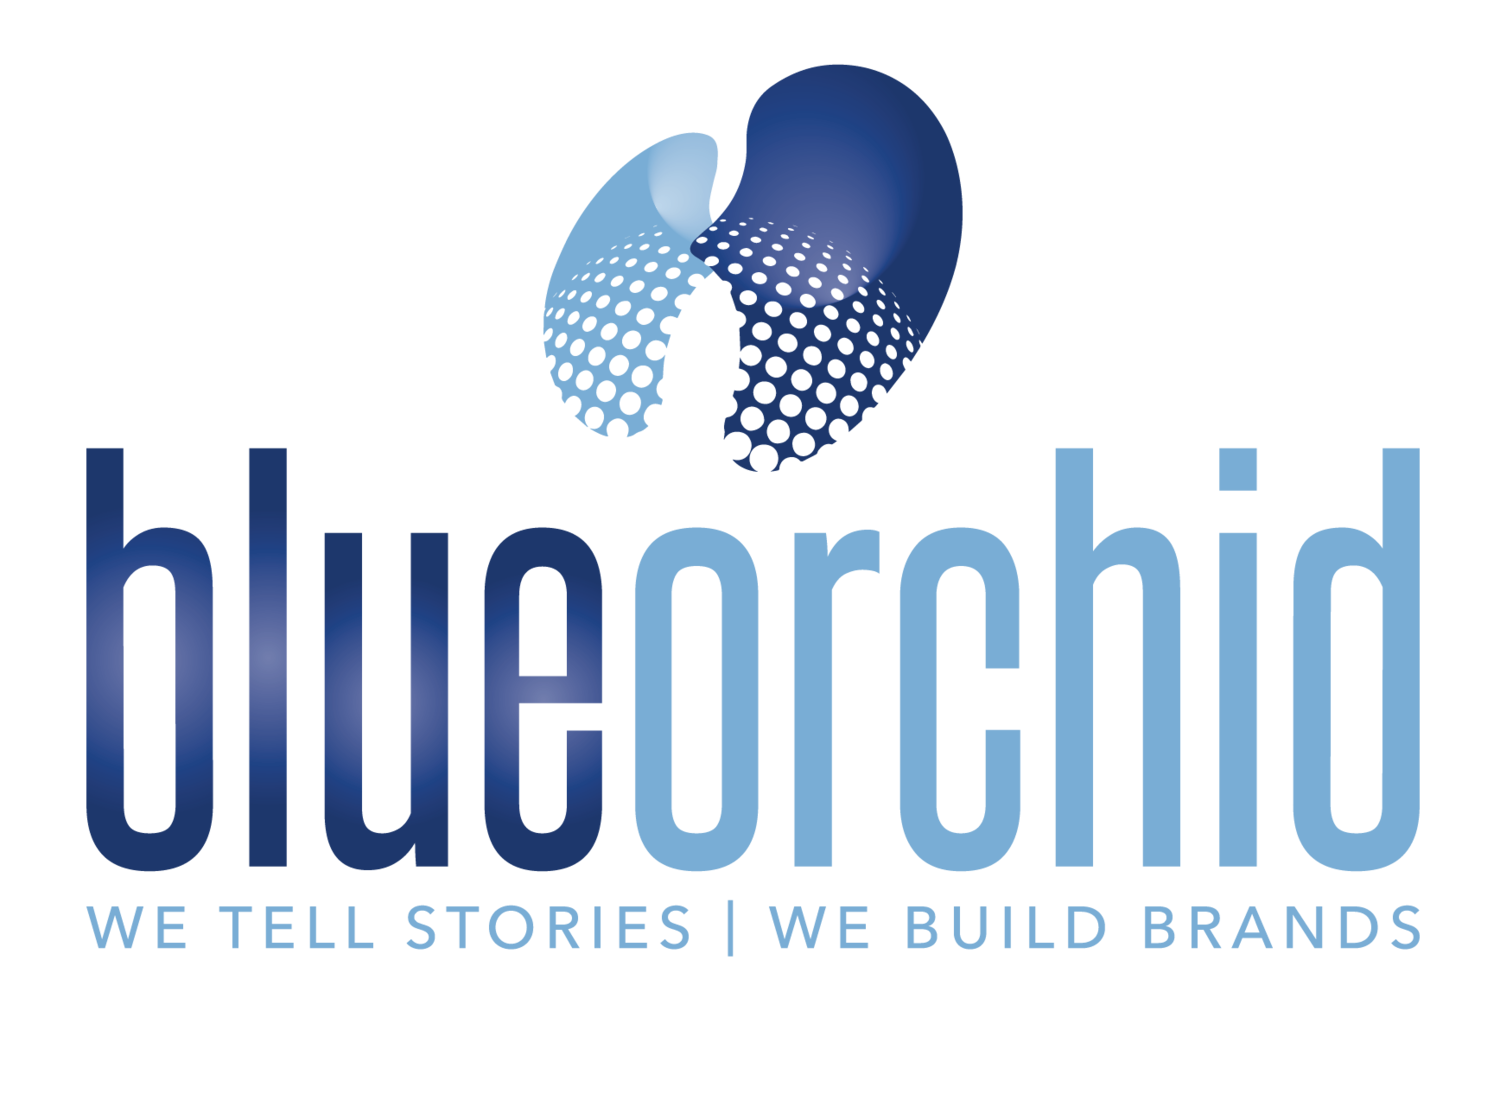 Blue Orchid Advertising Agency